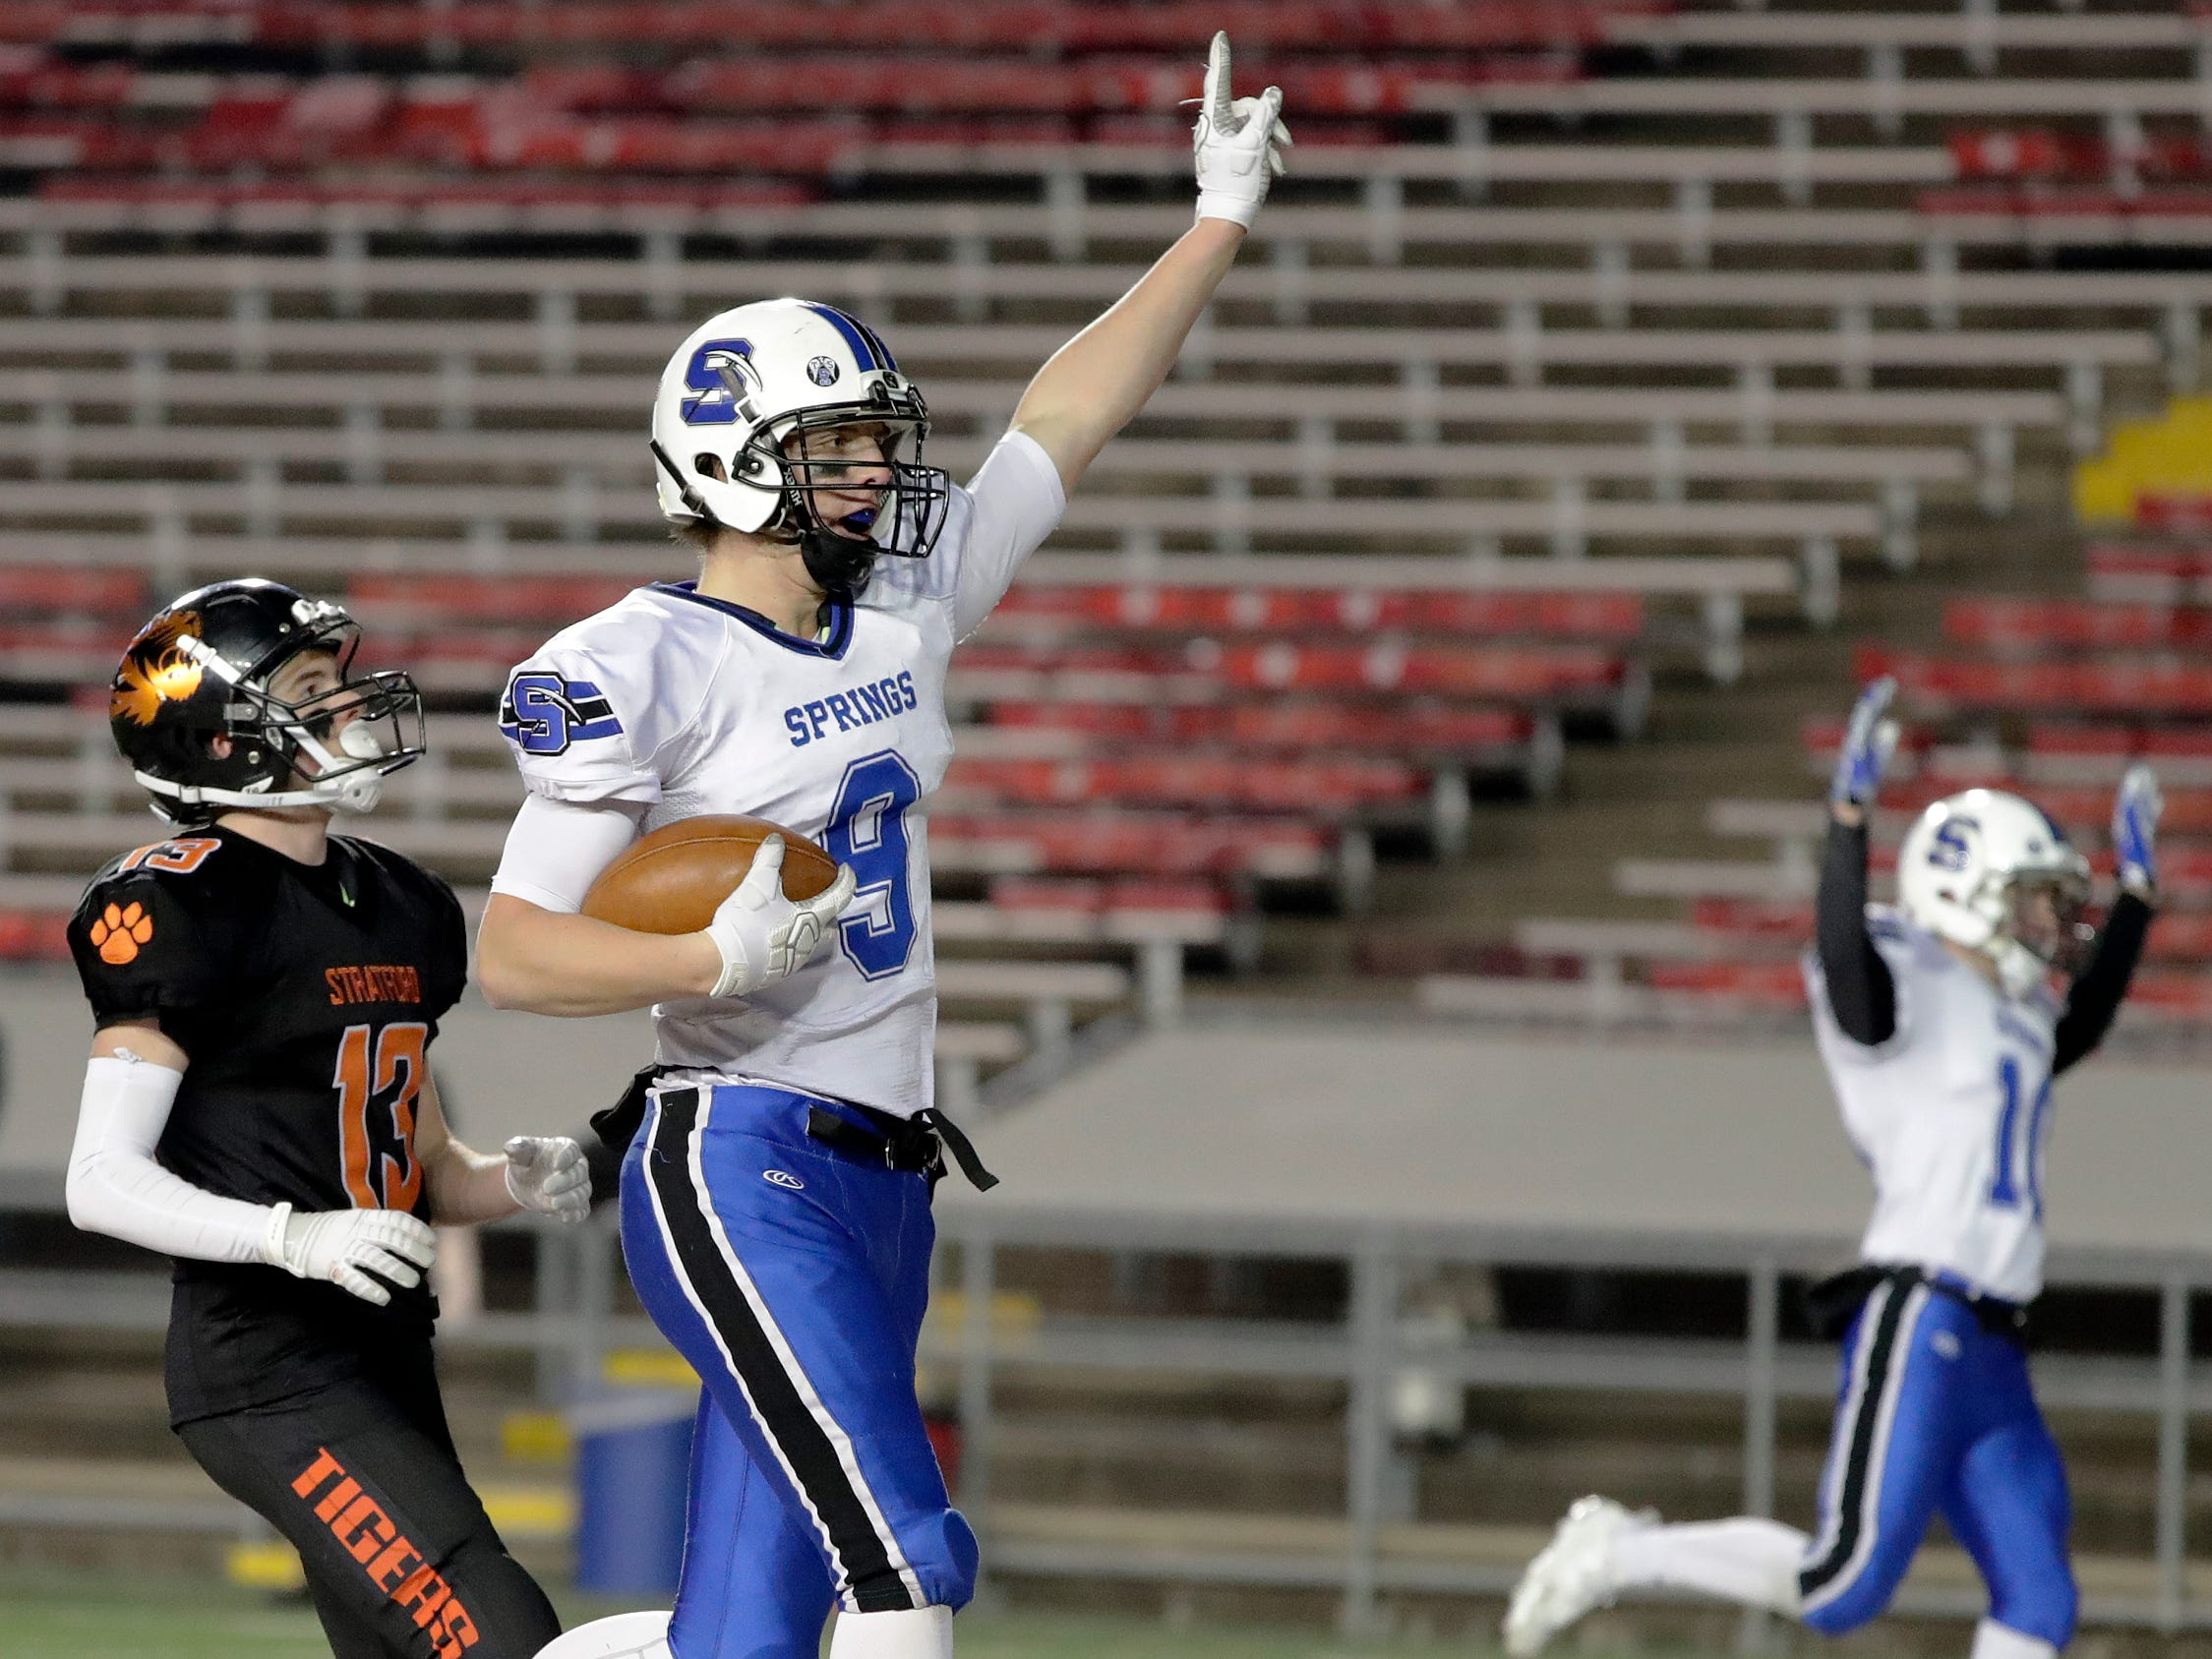 St Mary's Springs Academy's Cade Christensen (9) catches a touchdown pass against Stratford in the WIAA Division 5 championship game at Camp Randall Stadium on Thursday, November 15, 2018 in Madison, Wis.